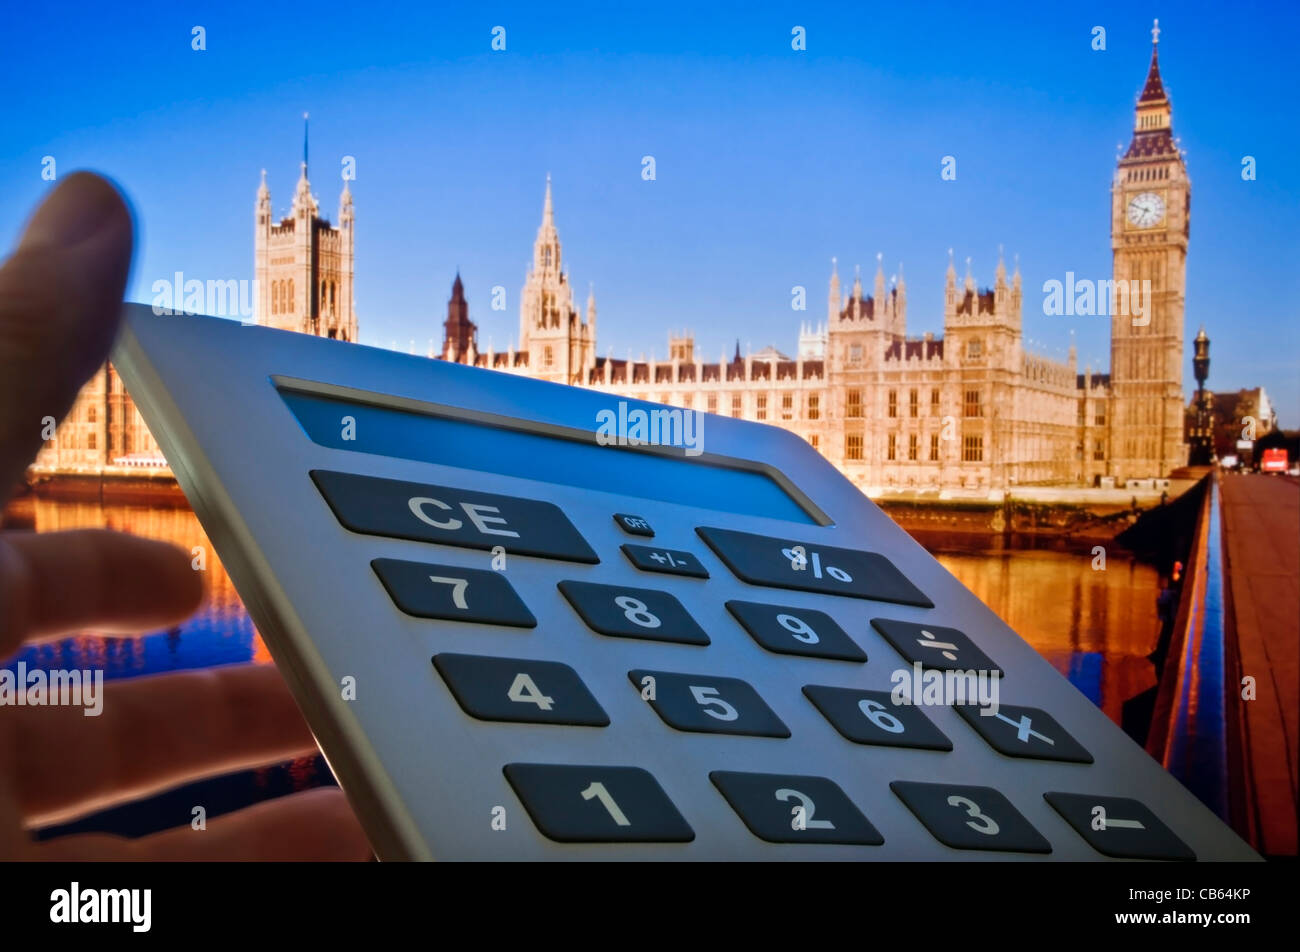 Concept image of calculator and Houses of Parliament in background Westminster London UK - Stock Image